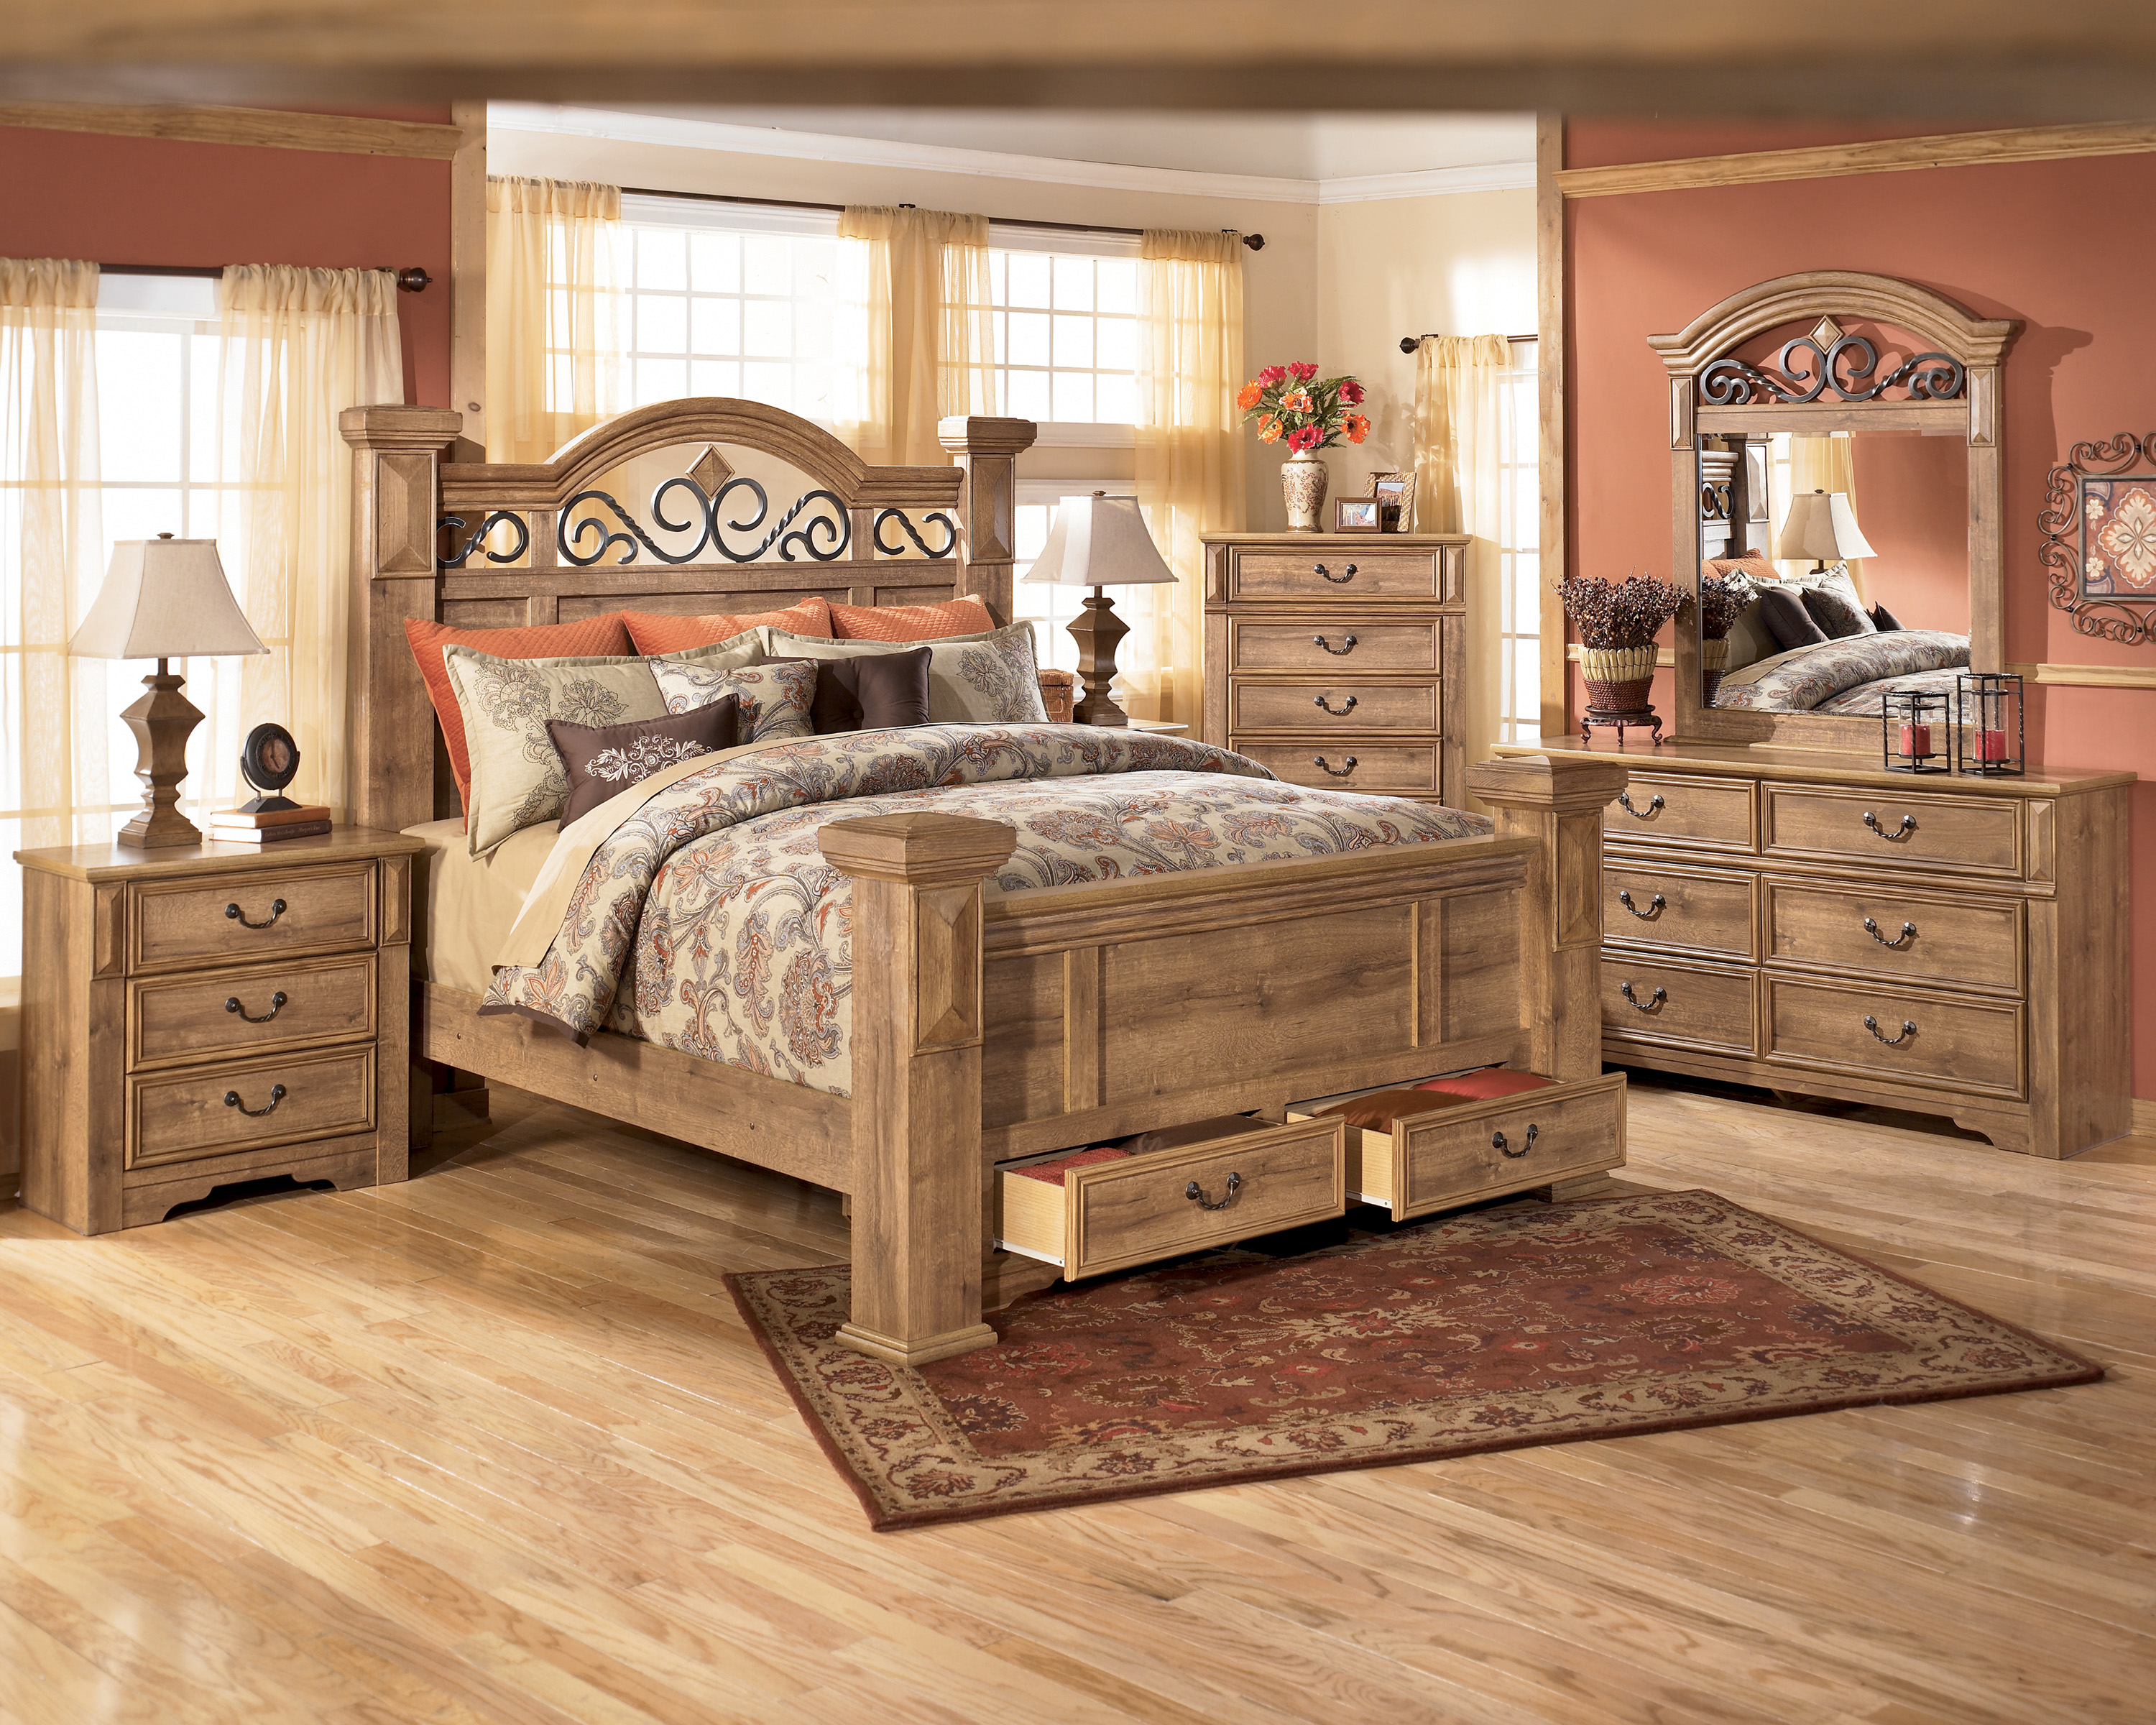 king size bedroom sets best king size bed set rosalinda RZFYCRG